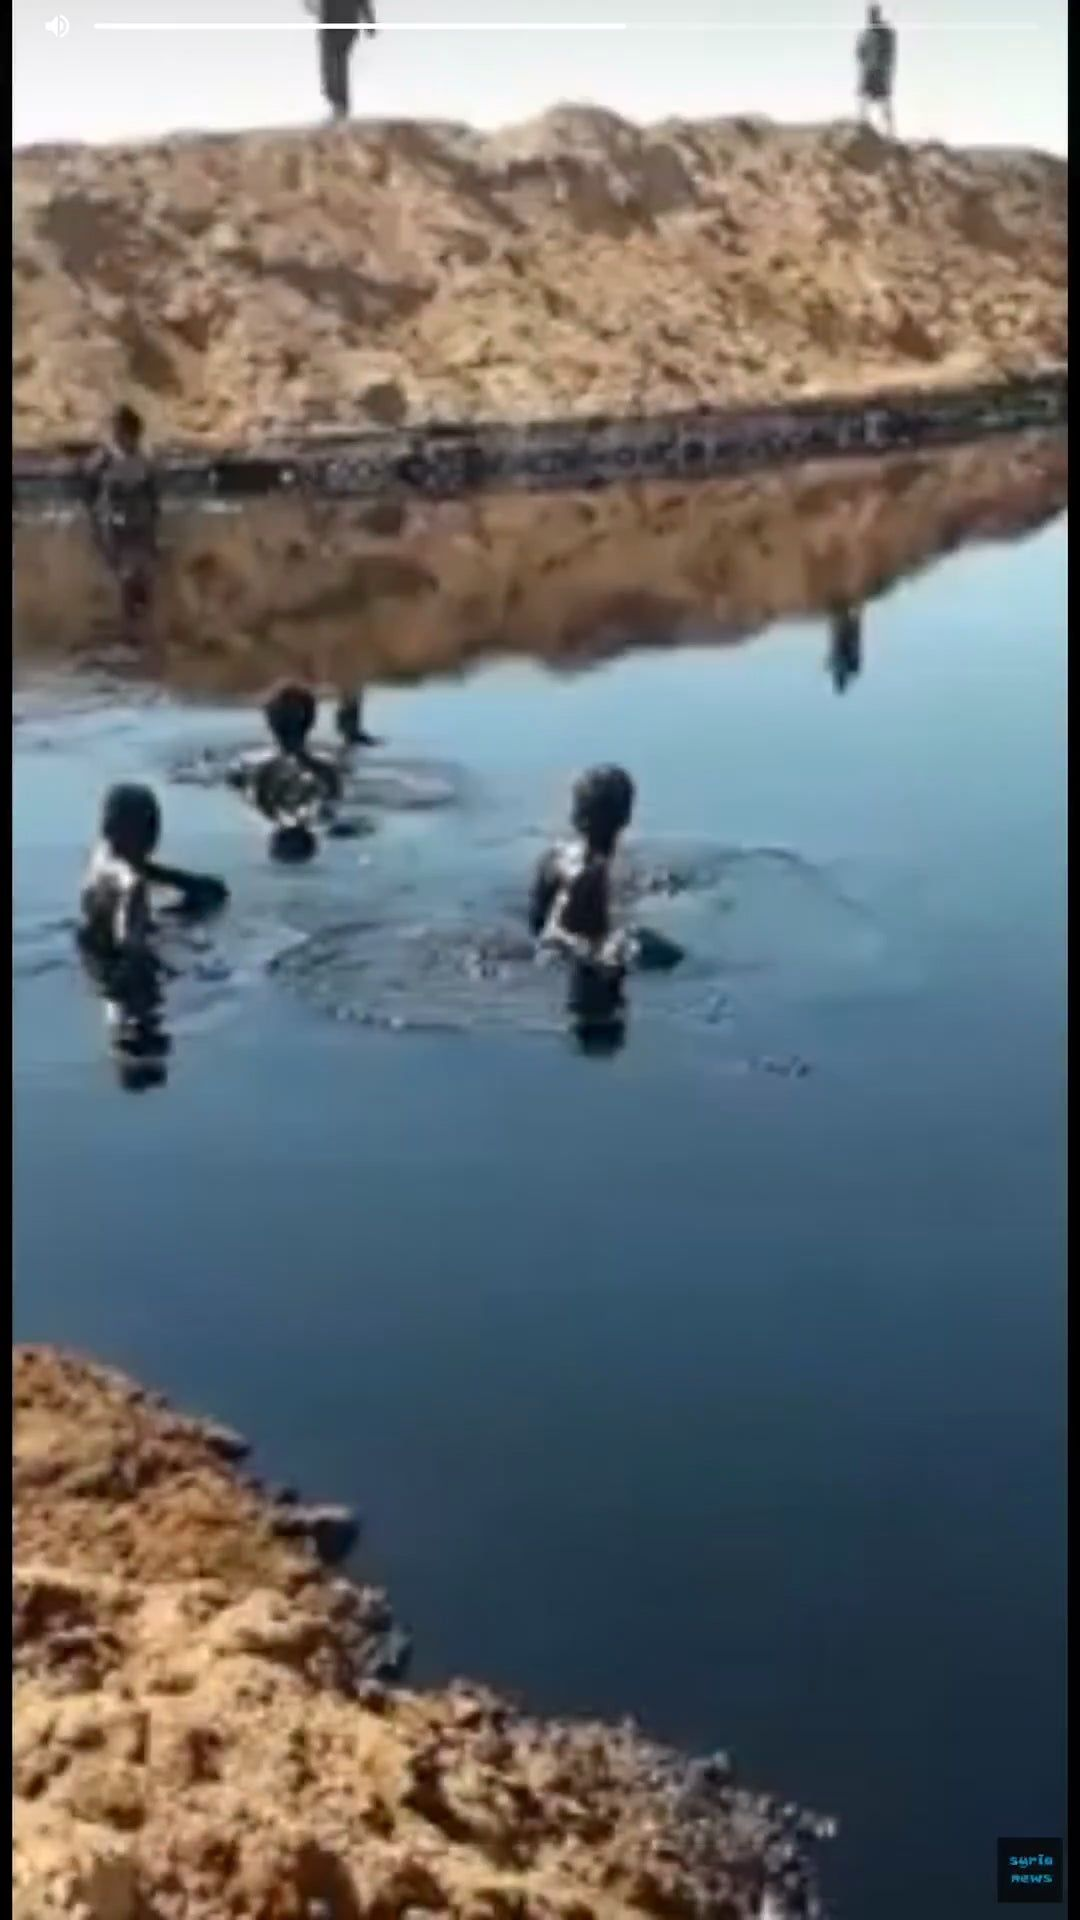 #WTF  - A bunch of young ones swimming in a lake of crude oil – fascinating #crazy #funnymeme #happy #picoftheday #smile